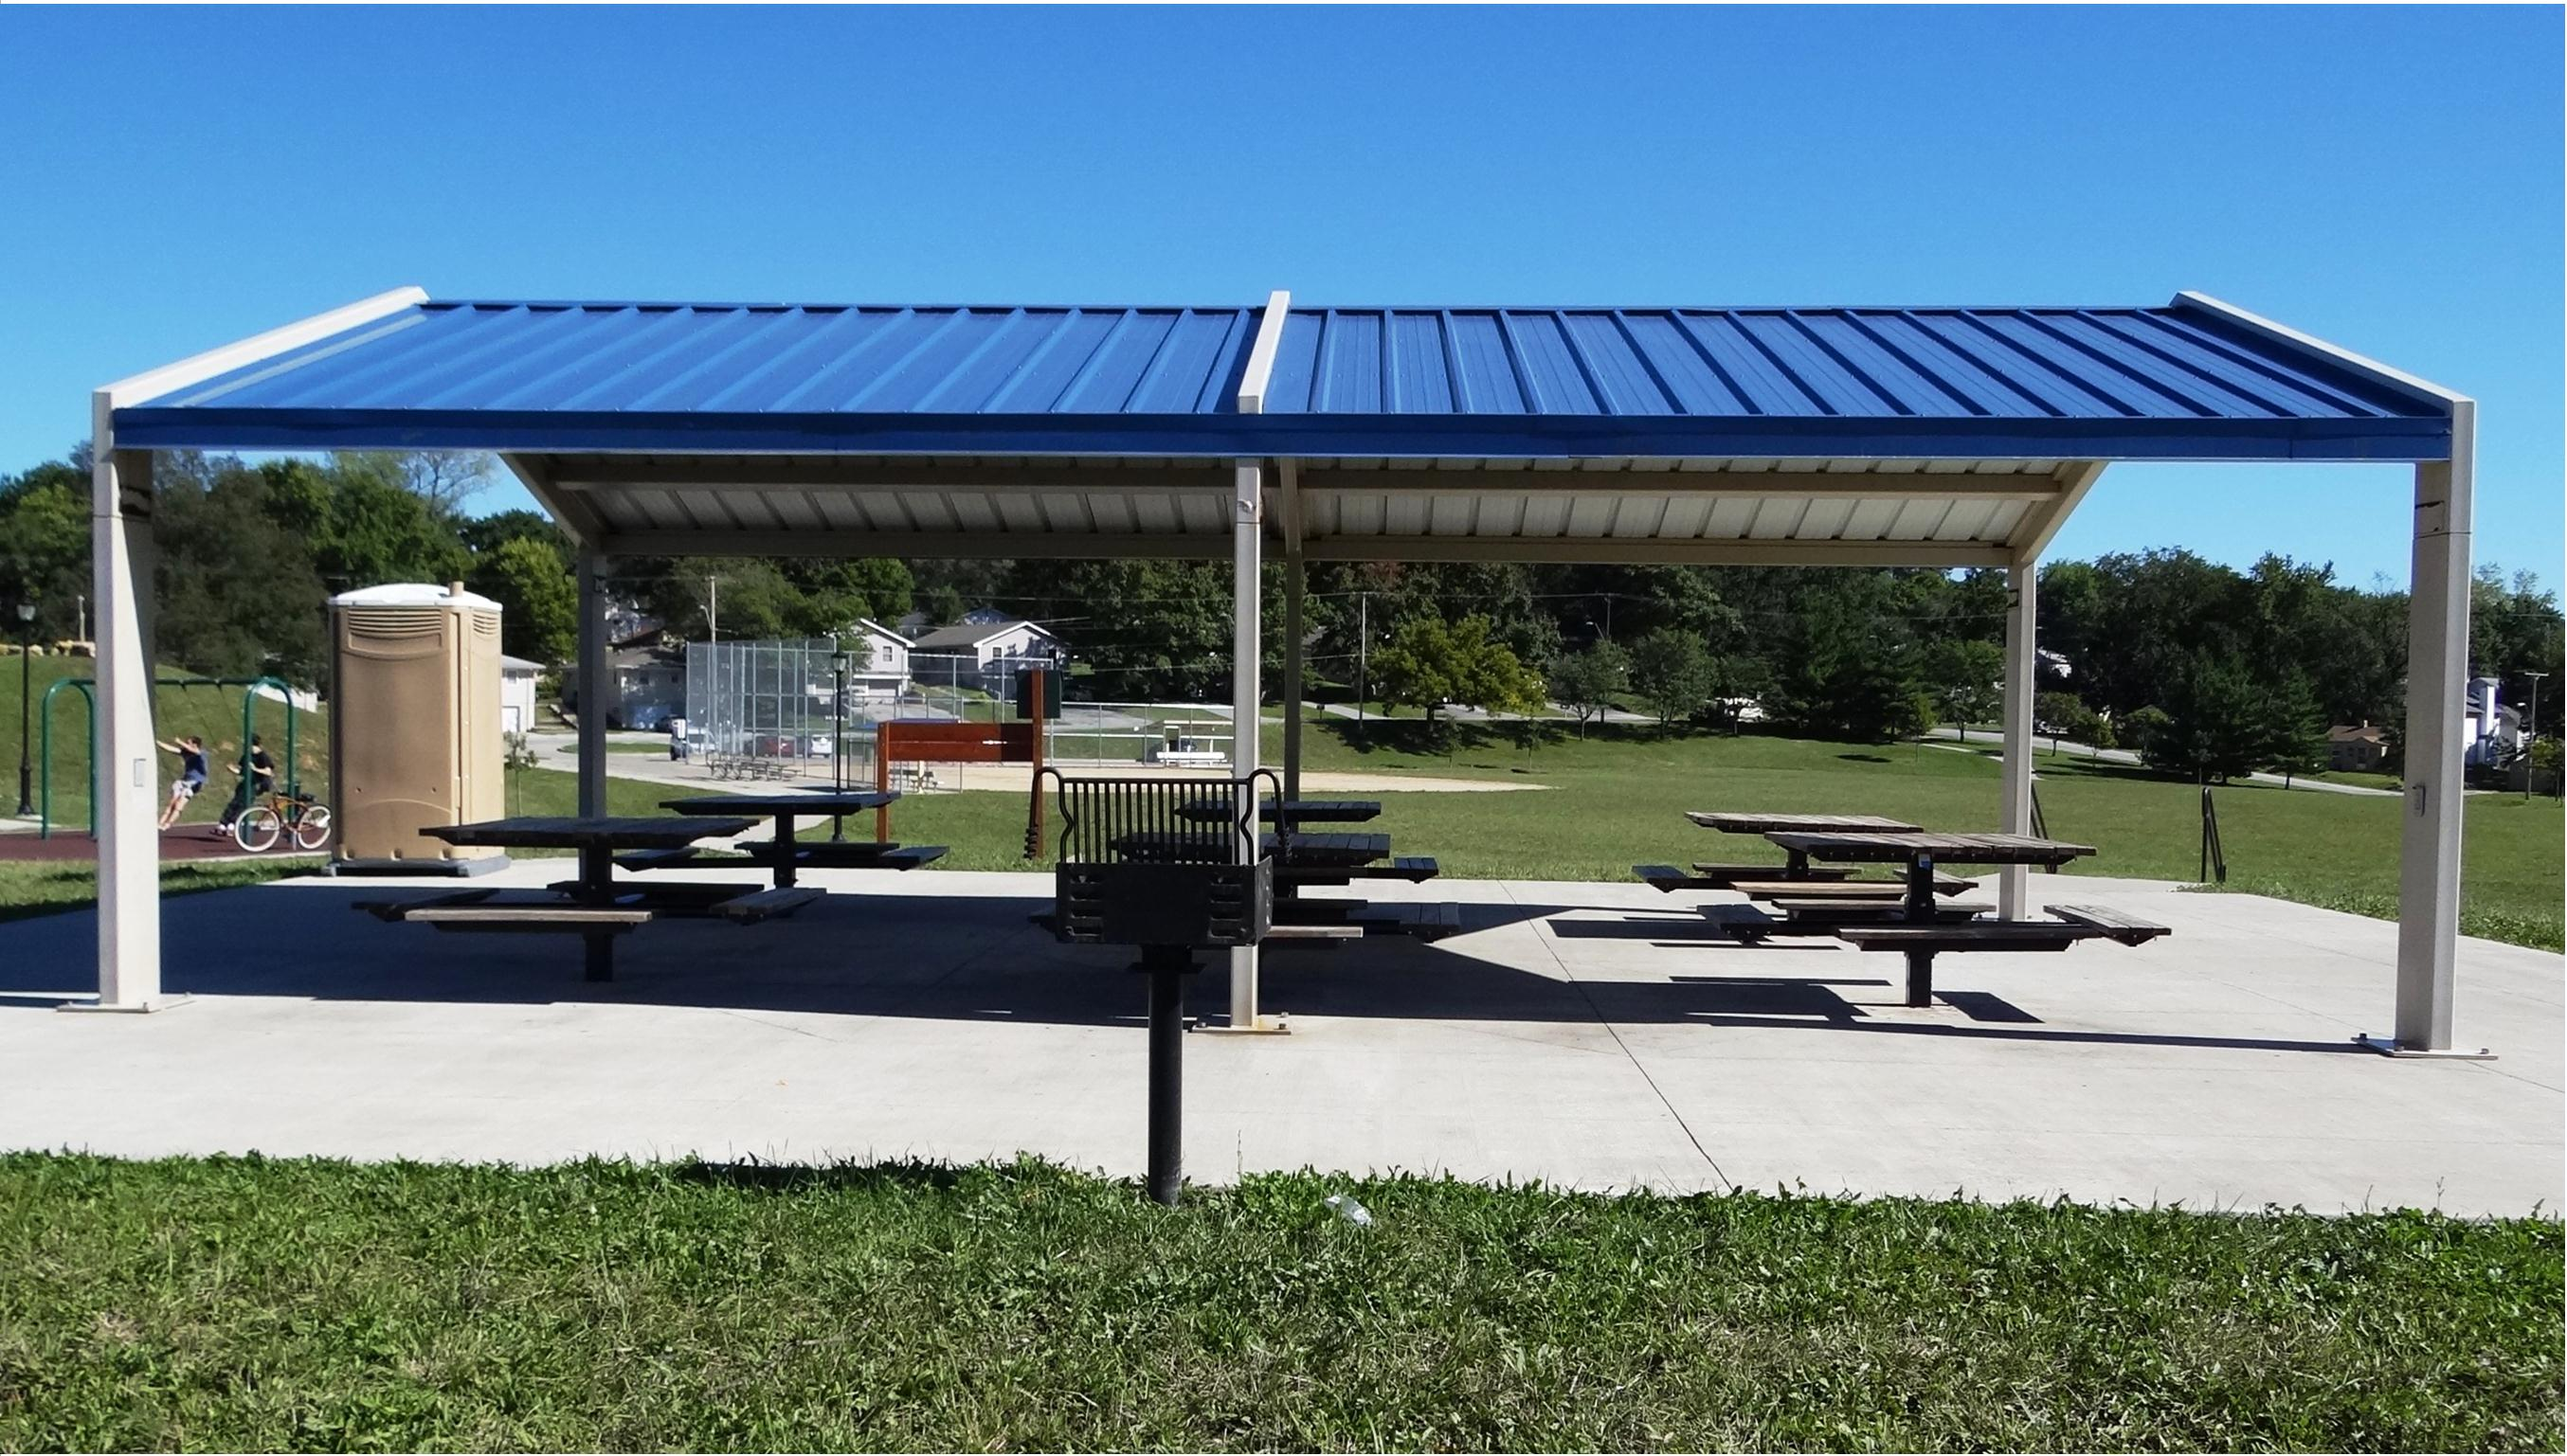 Chouteau Greenway Shelter (RESERVABLE FROM MAY 1-OCTOBER 31)